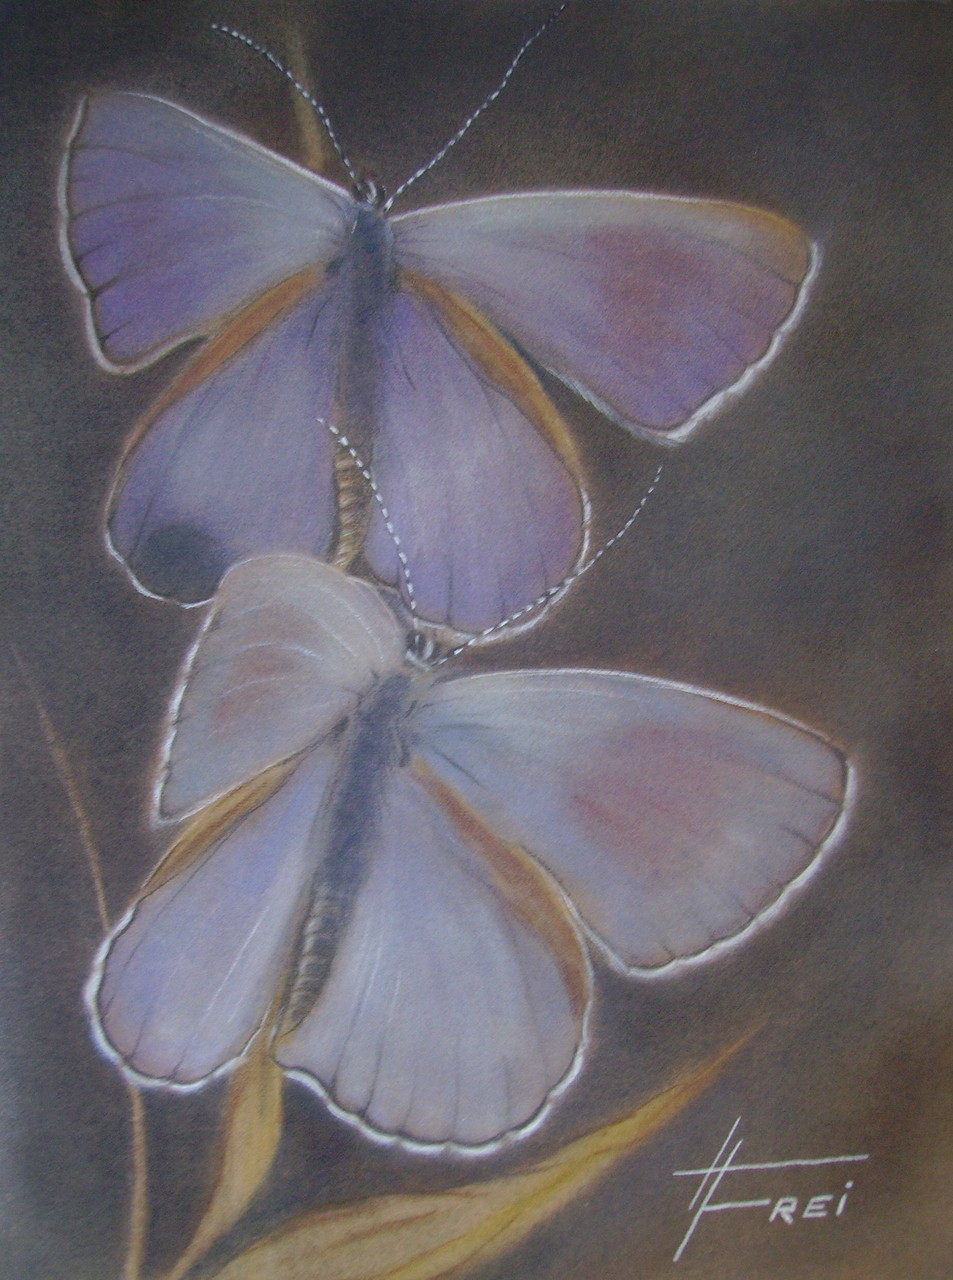 "ART HFrei - ""Butterfly"" - Pastell - 2006"